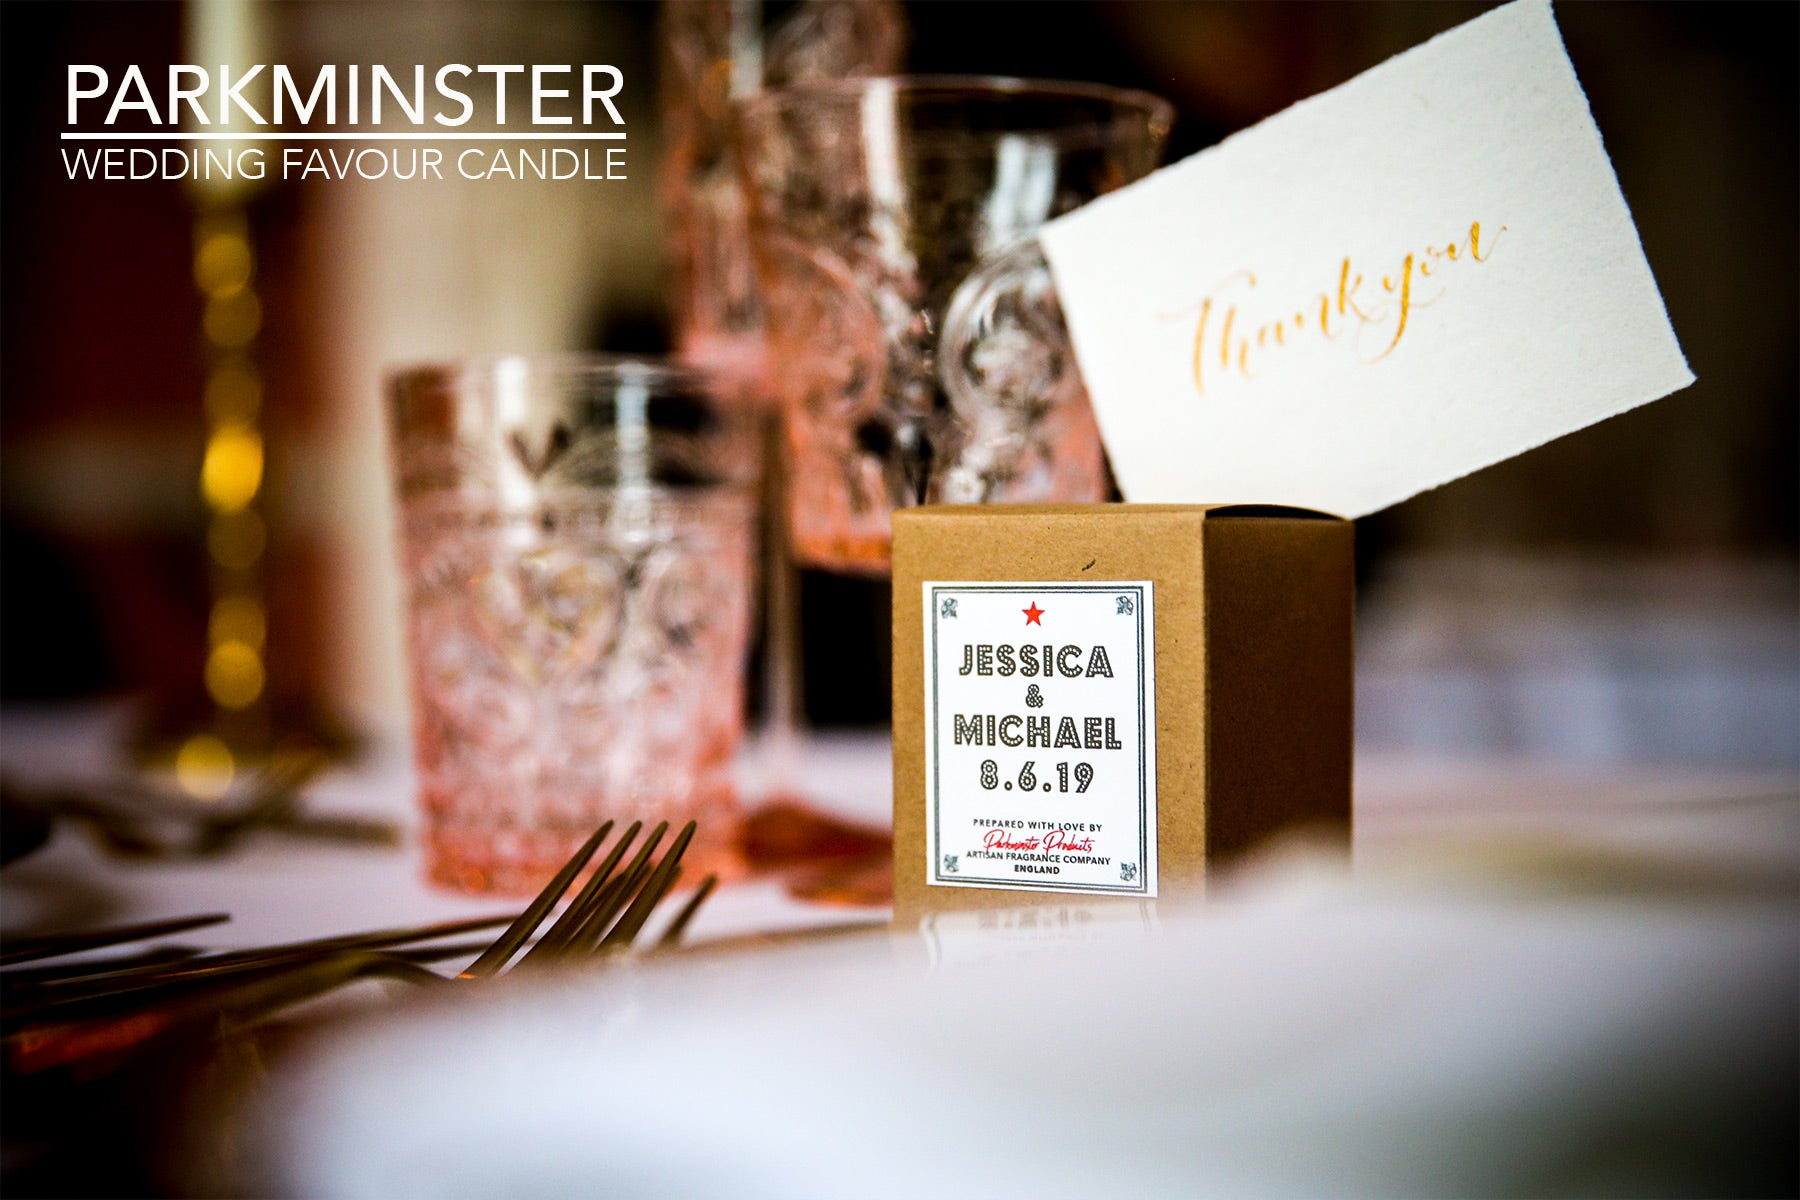 Parkminster Products - Scented Candles Reed Diffusers & Home